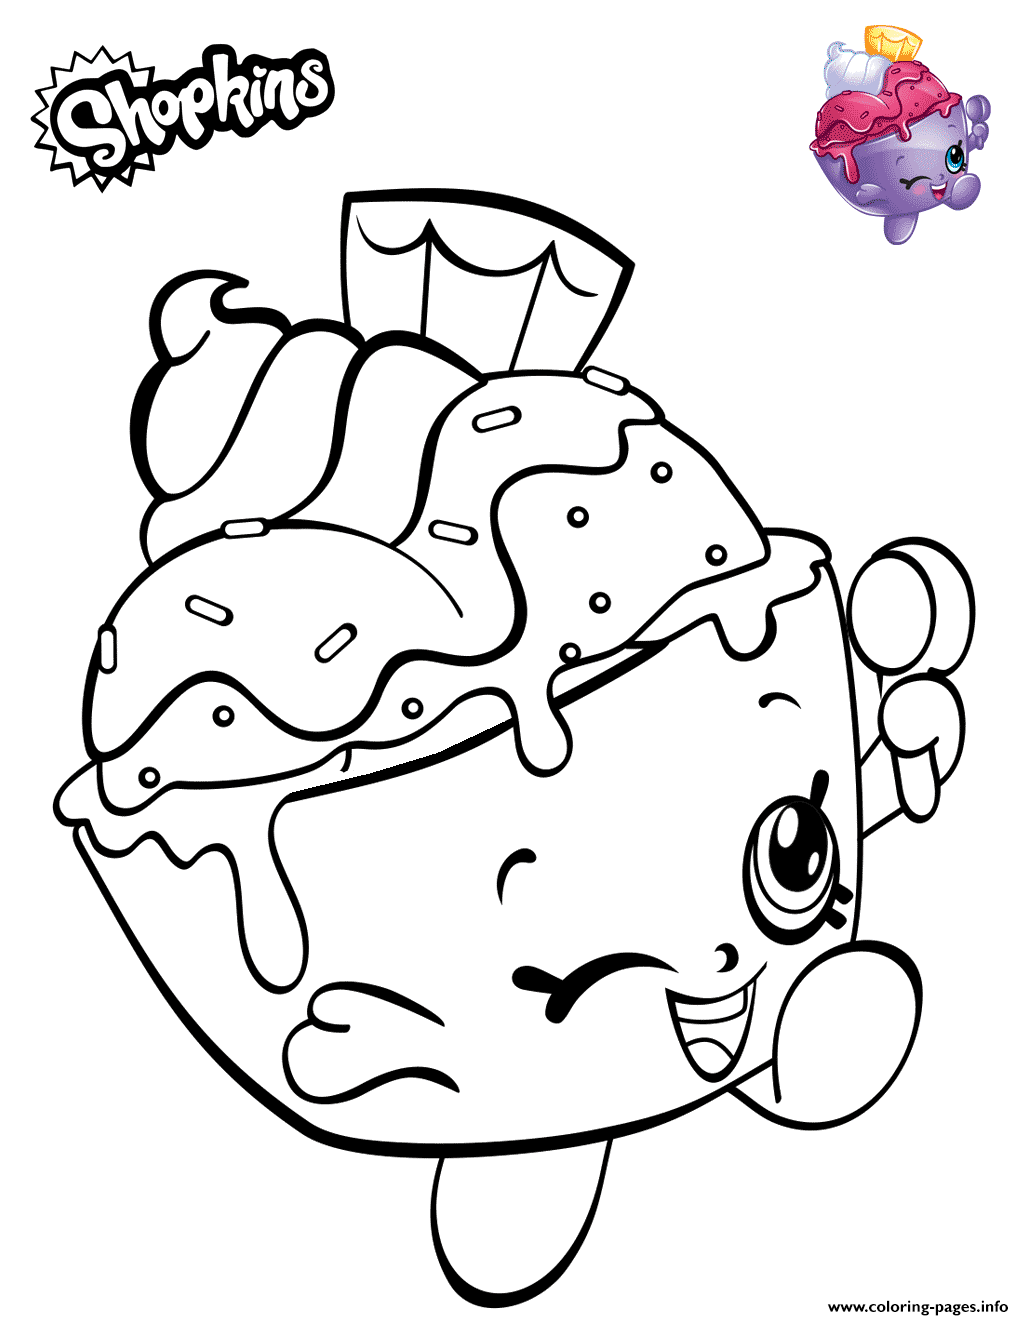 Print Shopkins Ice Cream Cup Coloring Pages Shopkin Coloring Pages Shopkins Coloring Pages Free Printable Cute Coloring Pages